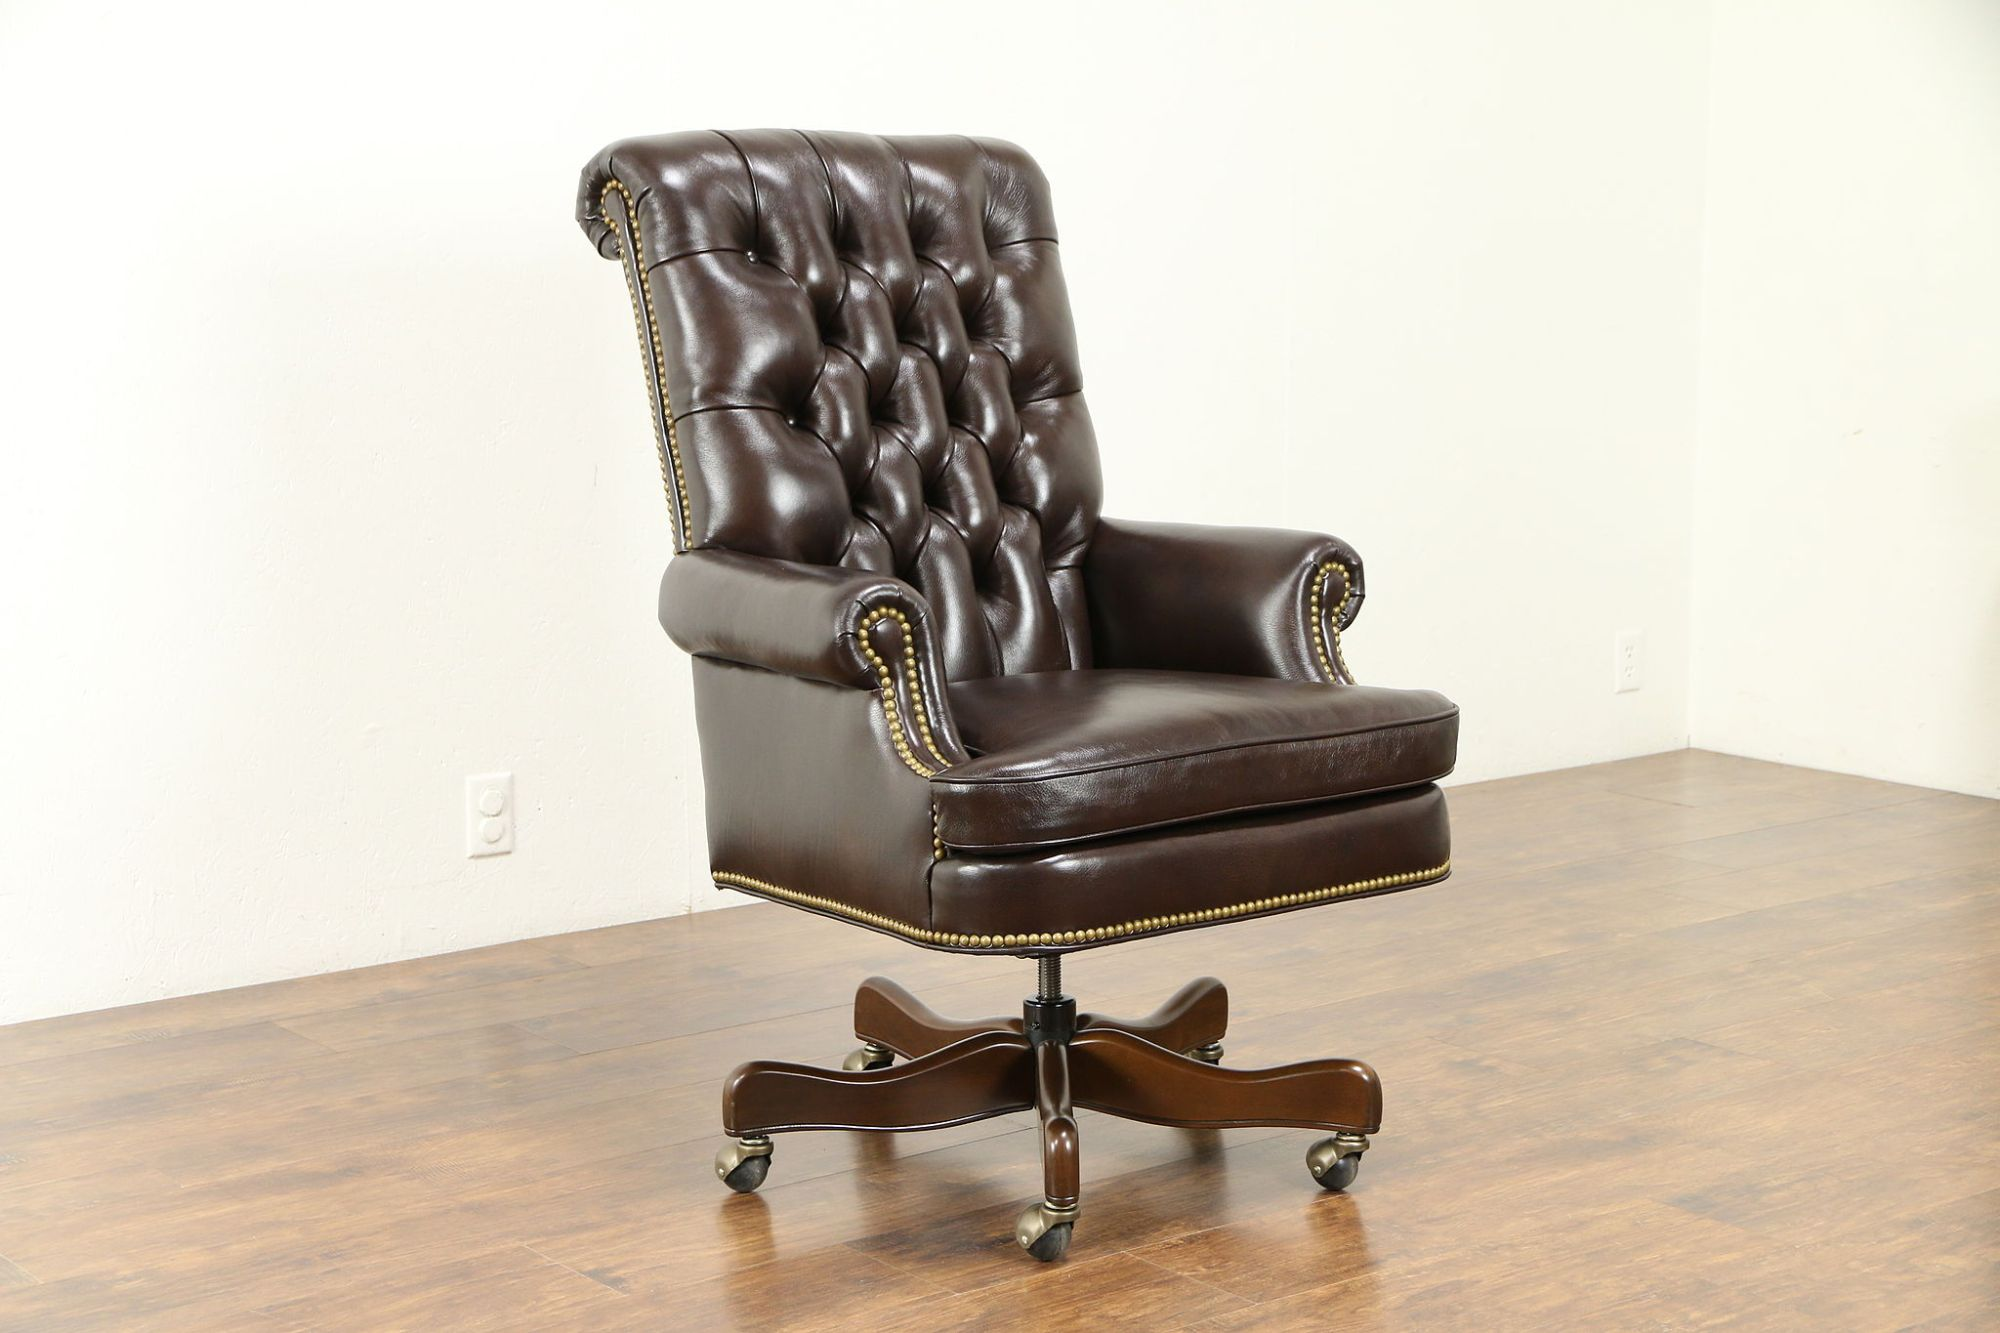 hight resolution of leather tufted swivel adjustable new desk chair cabot wrenn 30995 photo